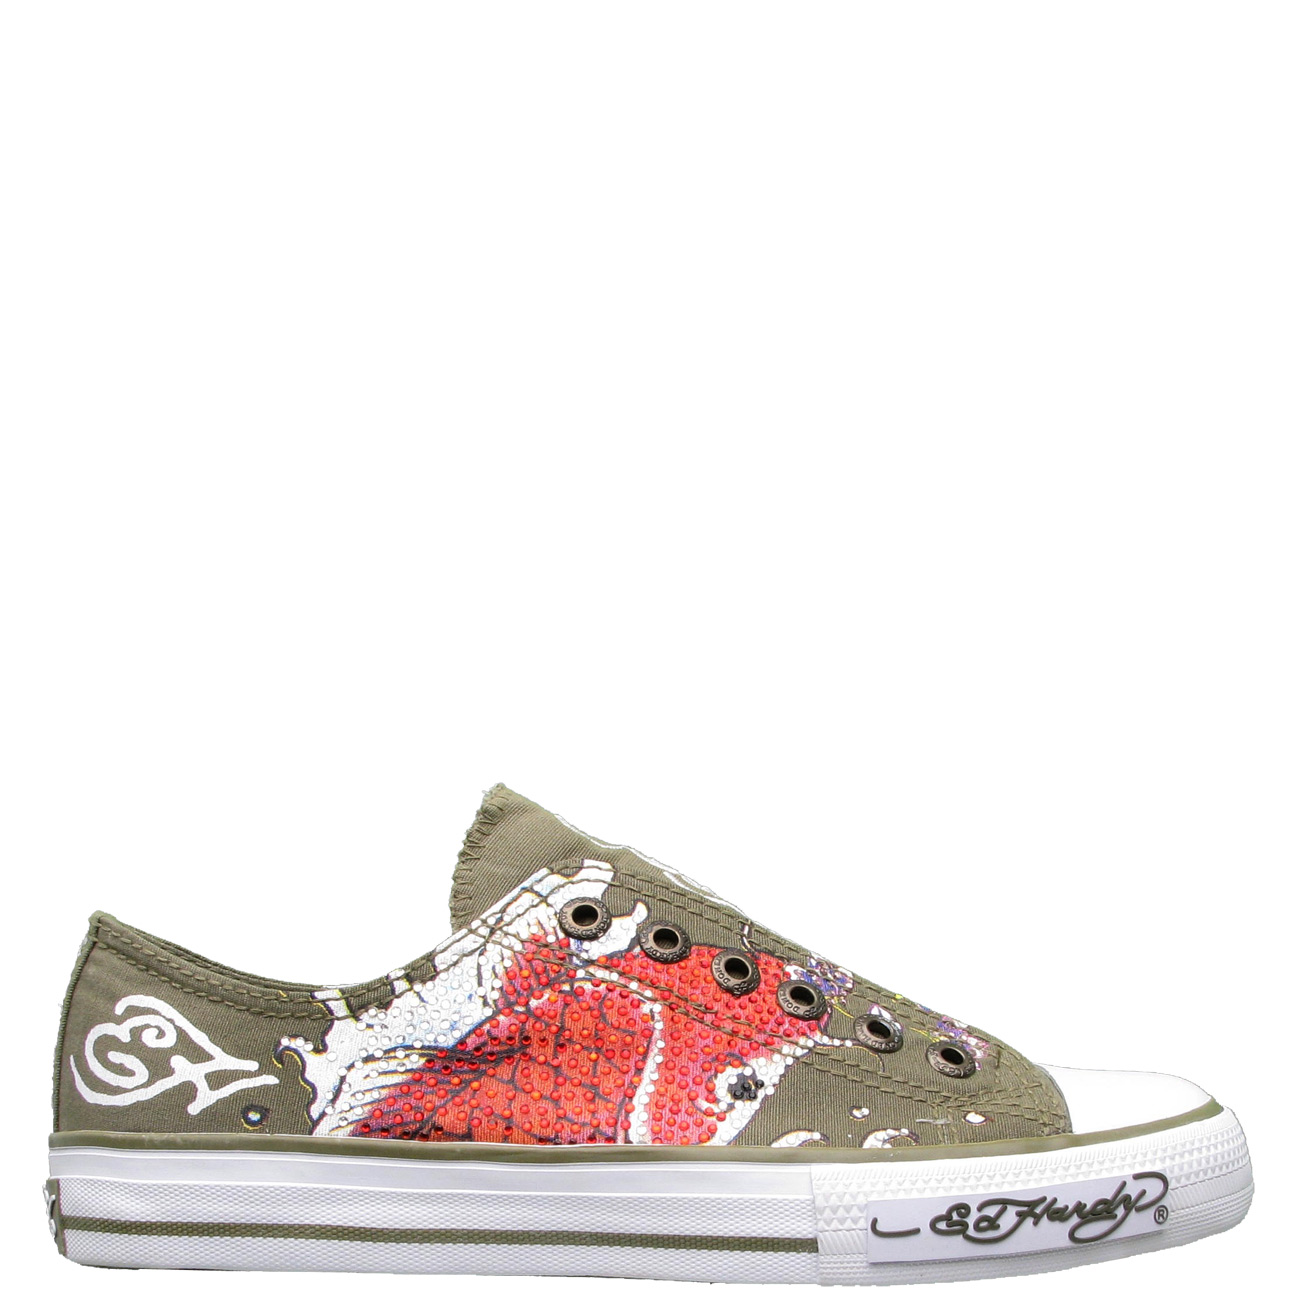 Ed Hardy LR Shimmer Koi Fish Sneaker for Women - Military